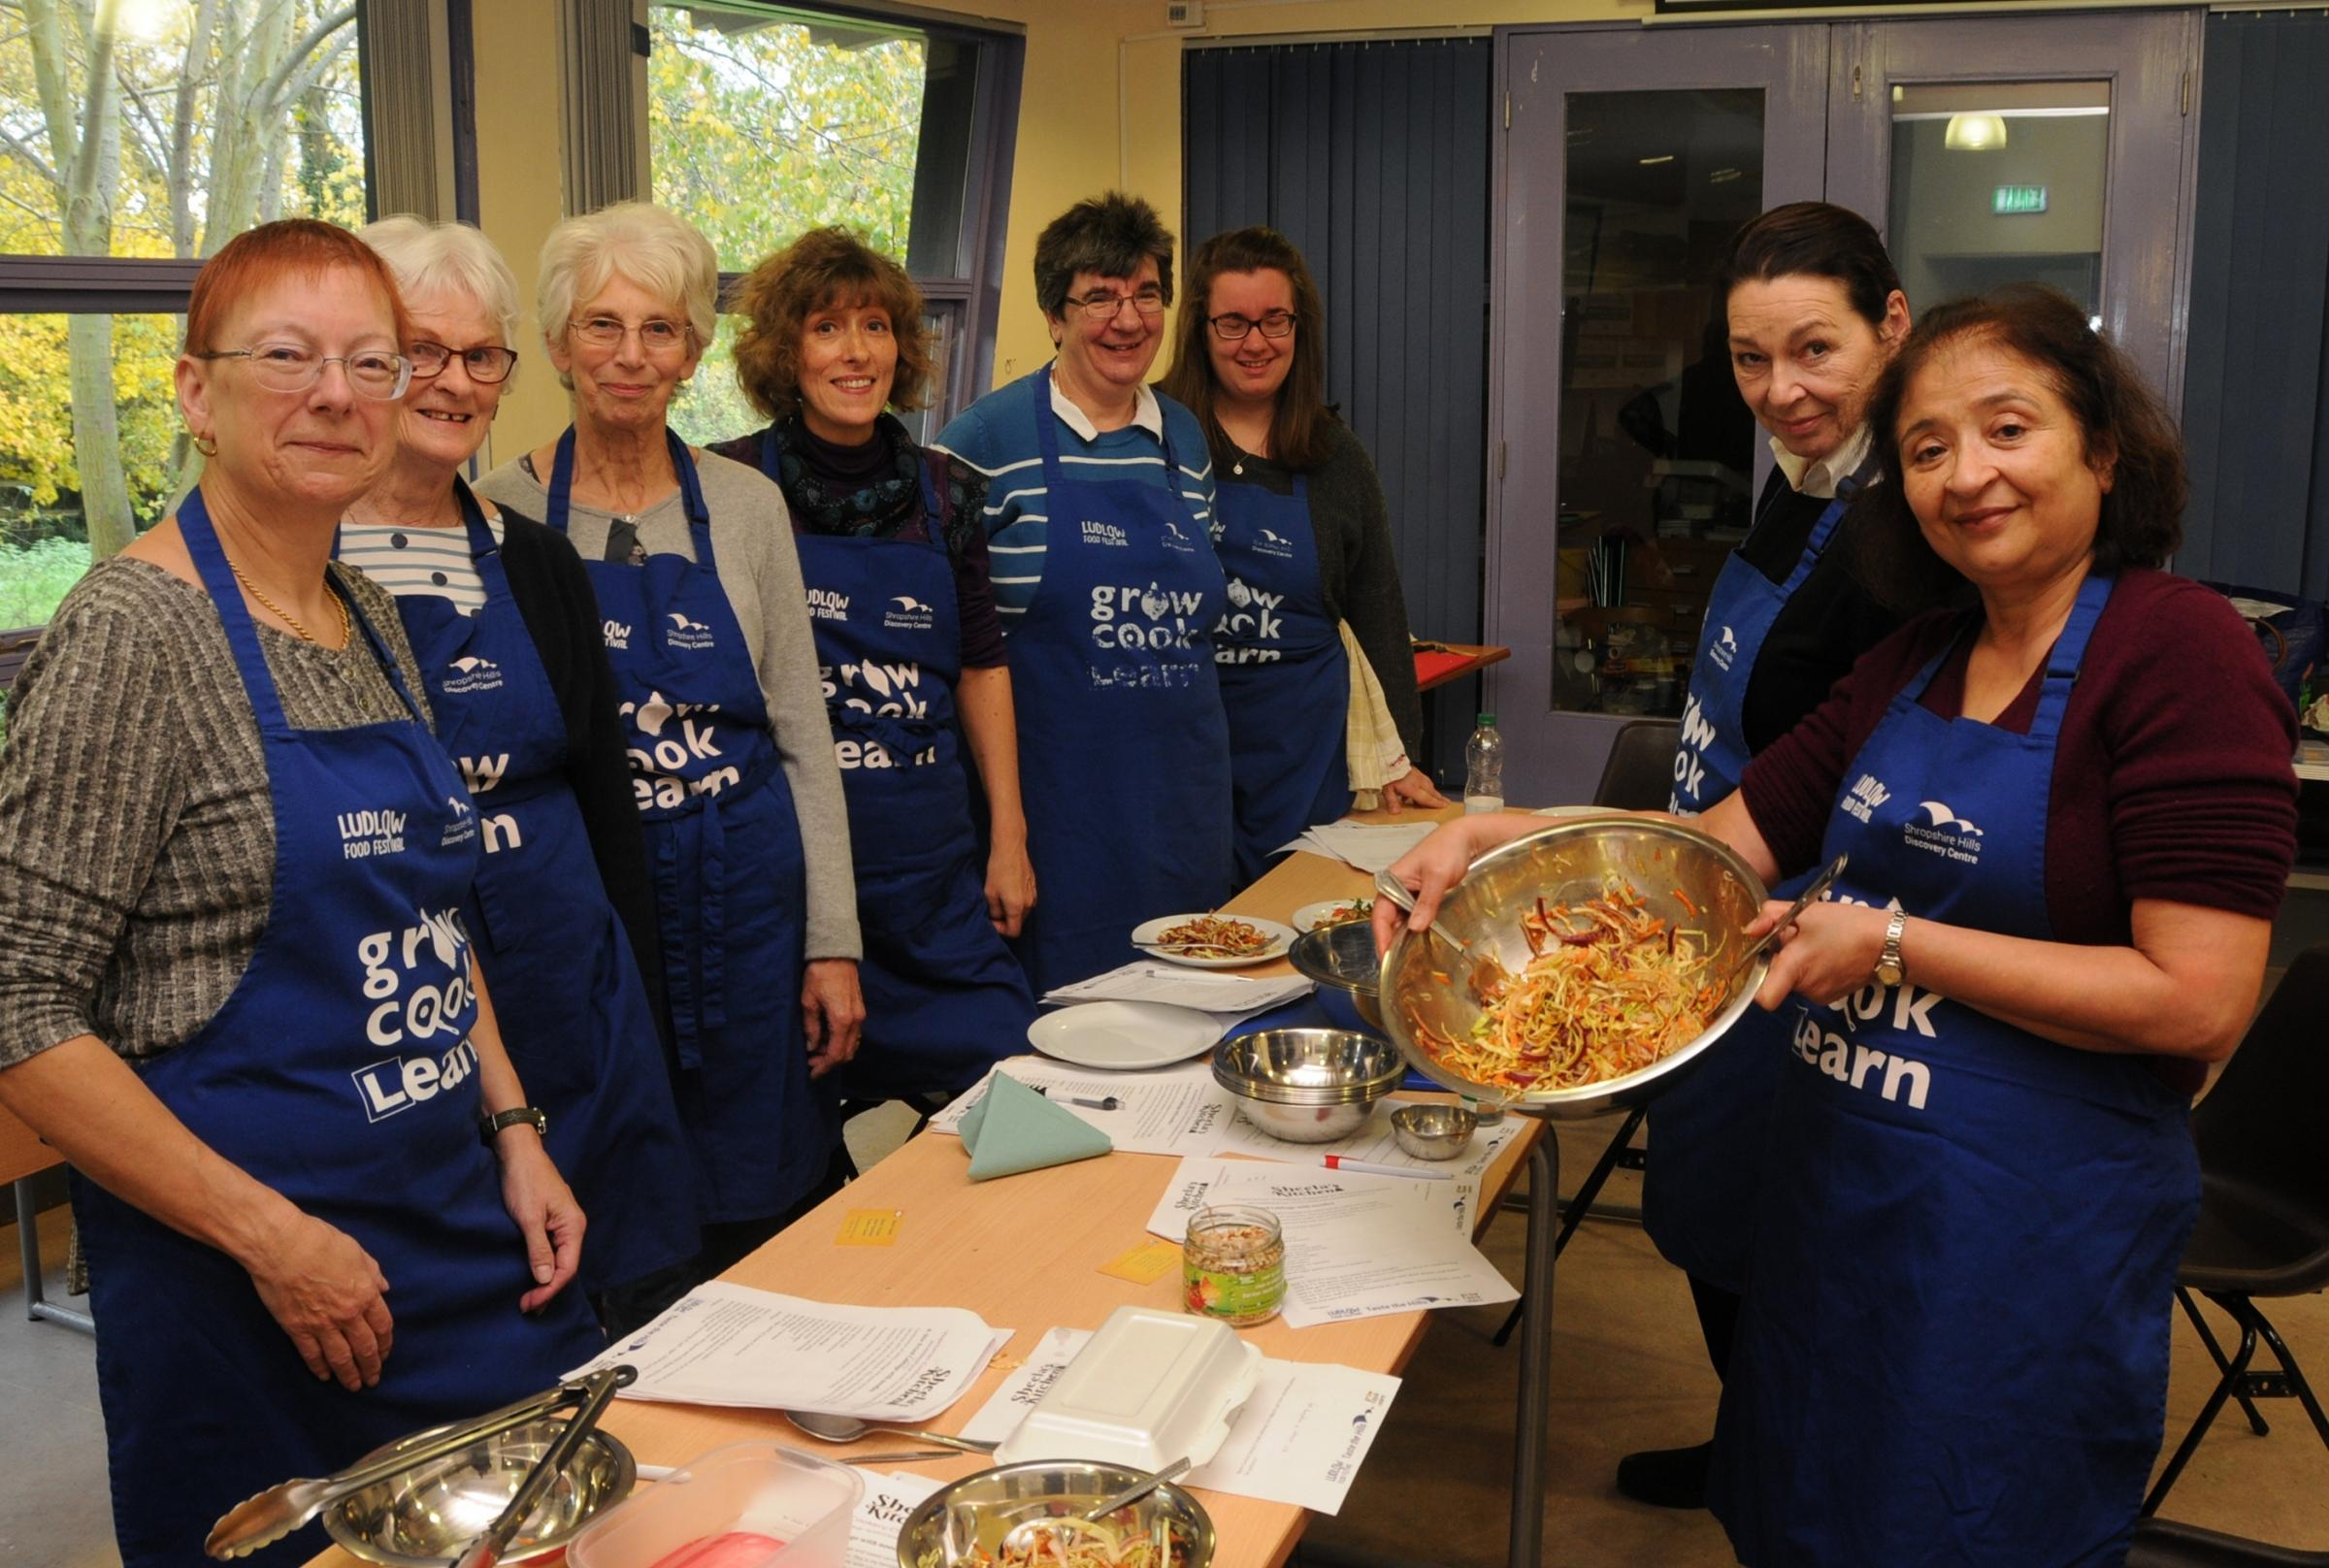 Sheela Udeshi (right) with the particpants of the Thai Cookery course at Shropshire Hills Disocvery Centre.